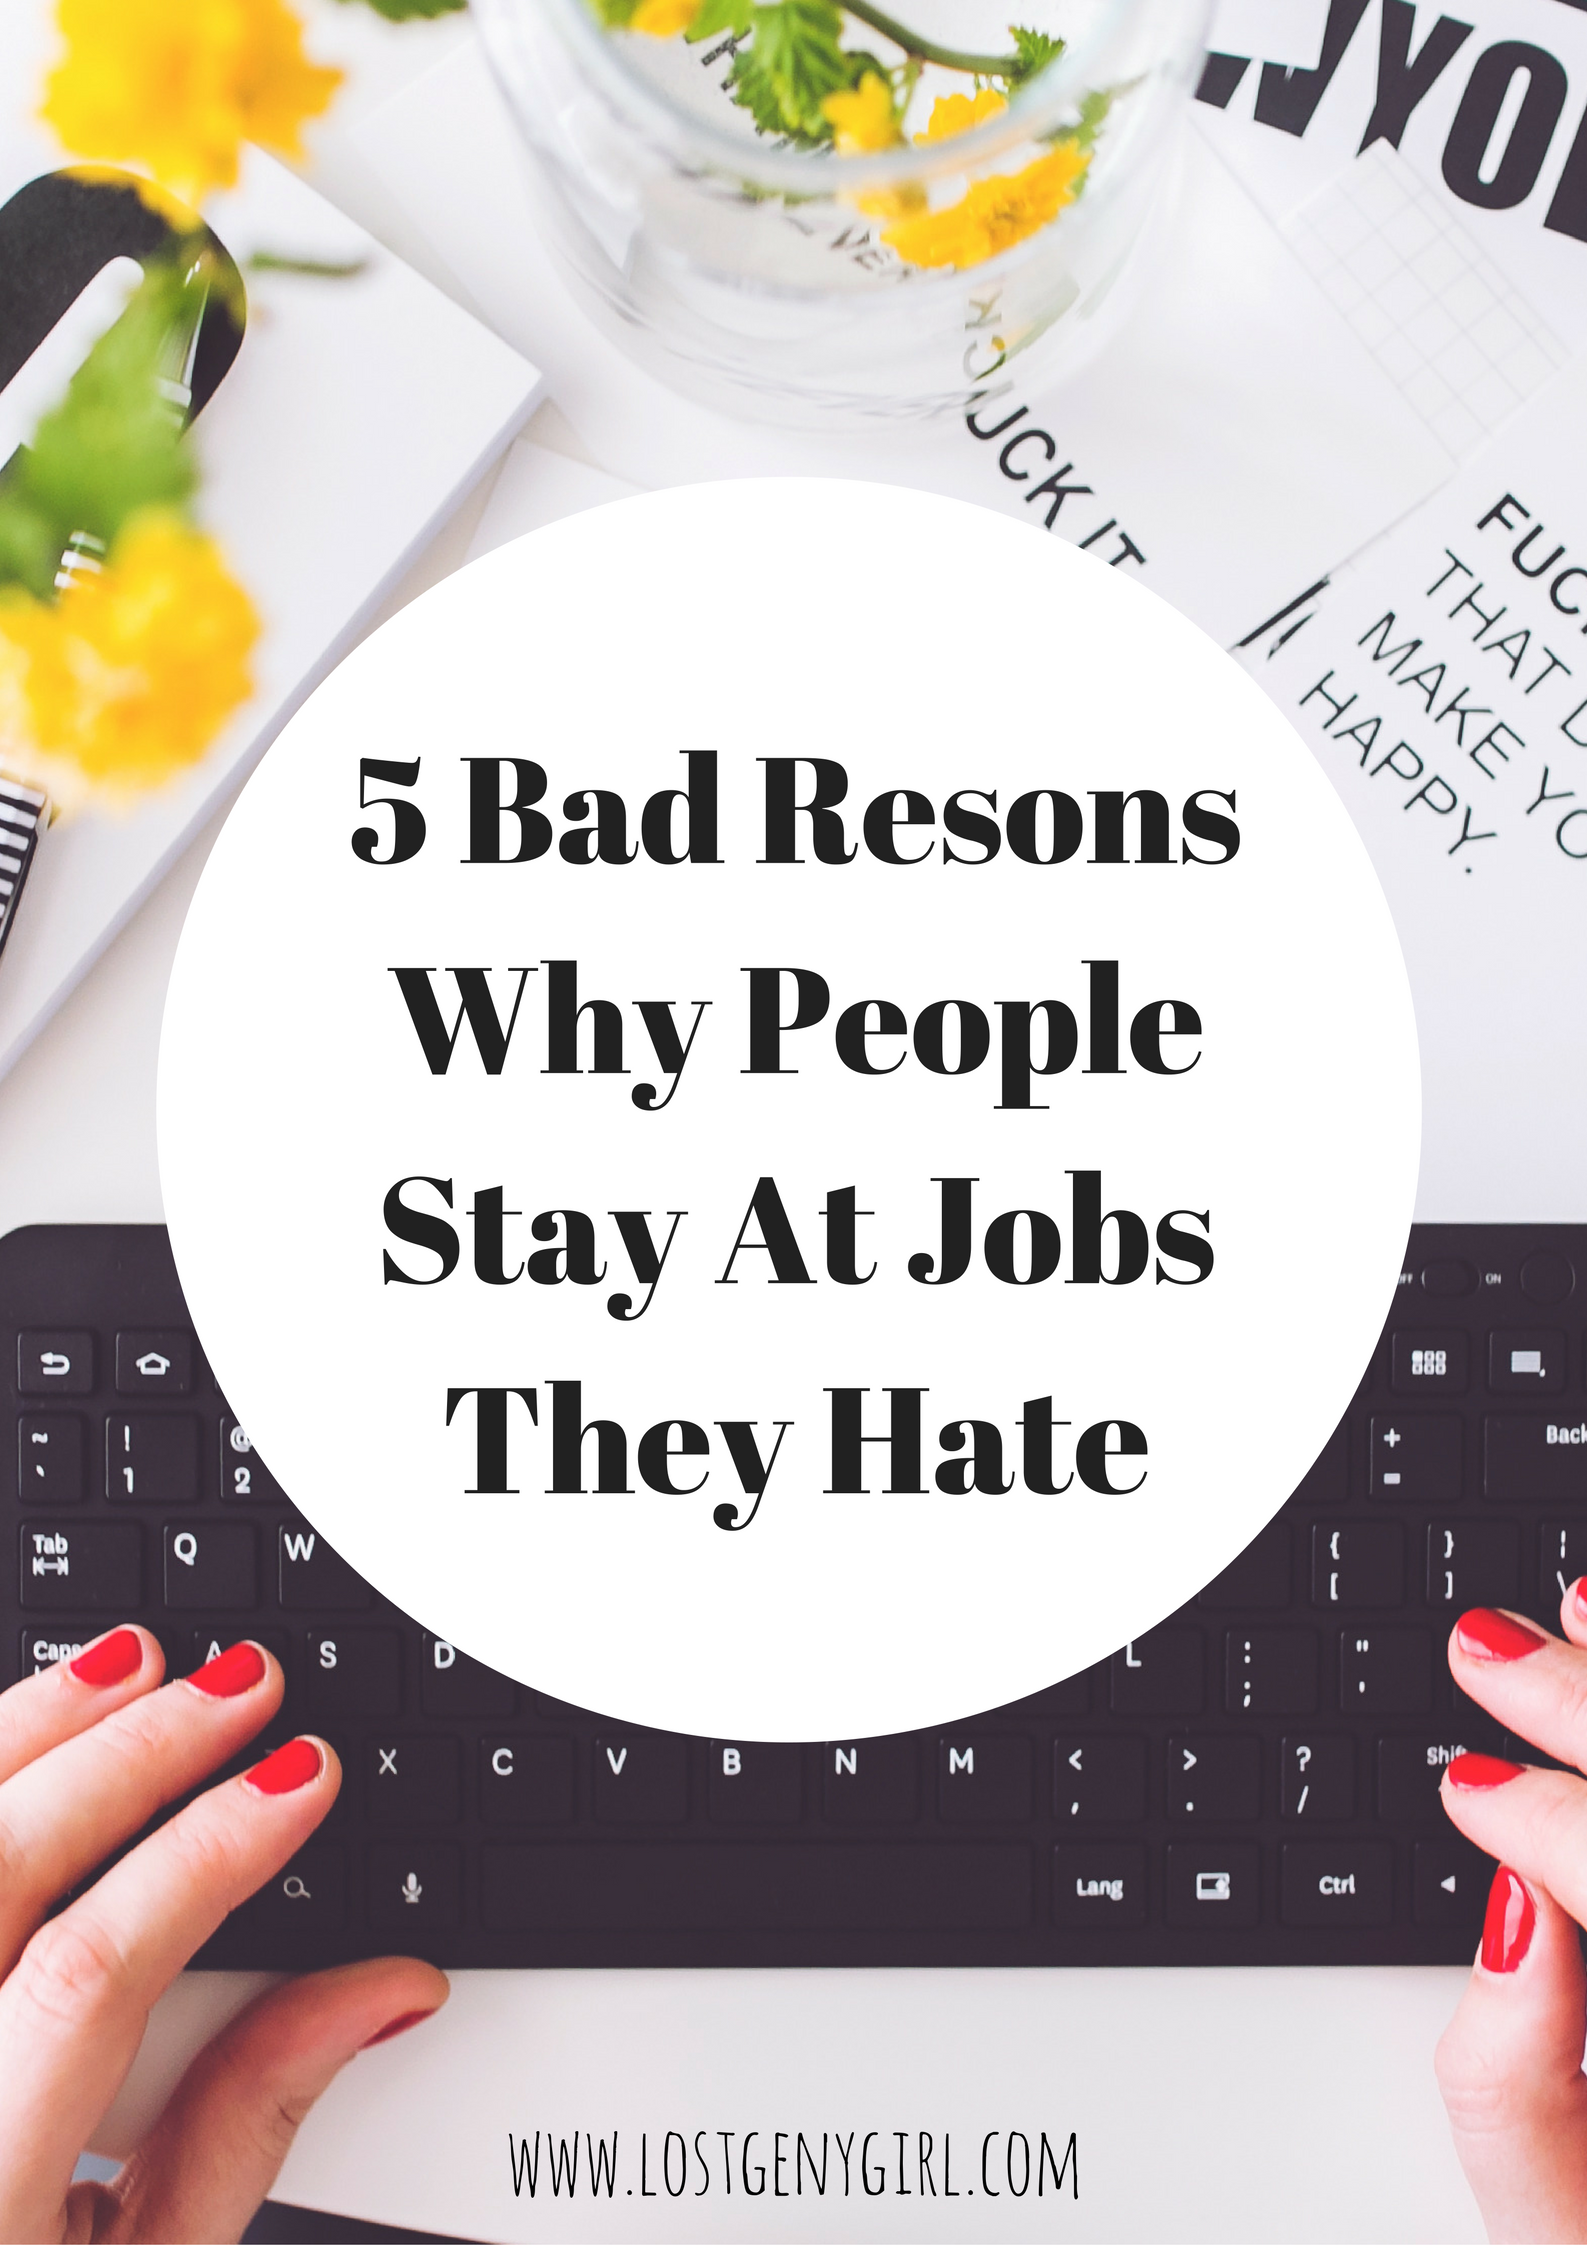 5 Bad Reasons Why People Stay At Jobs They Hate